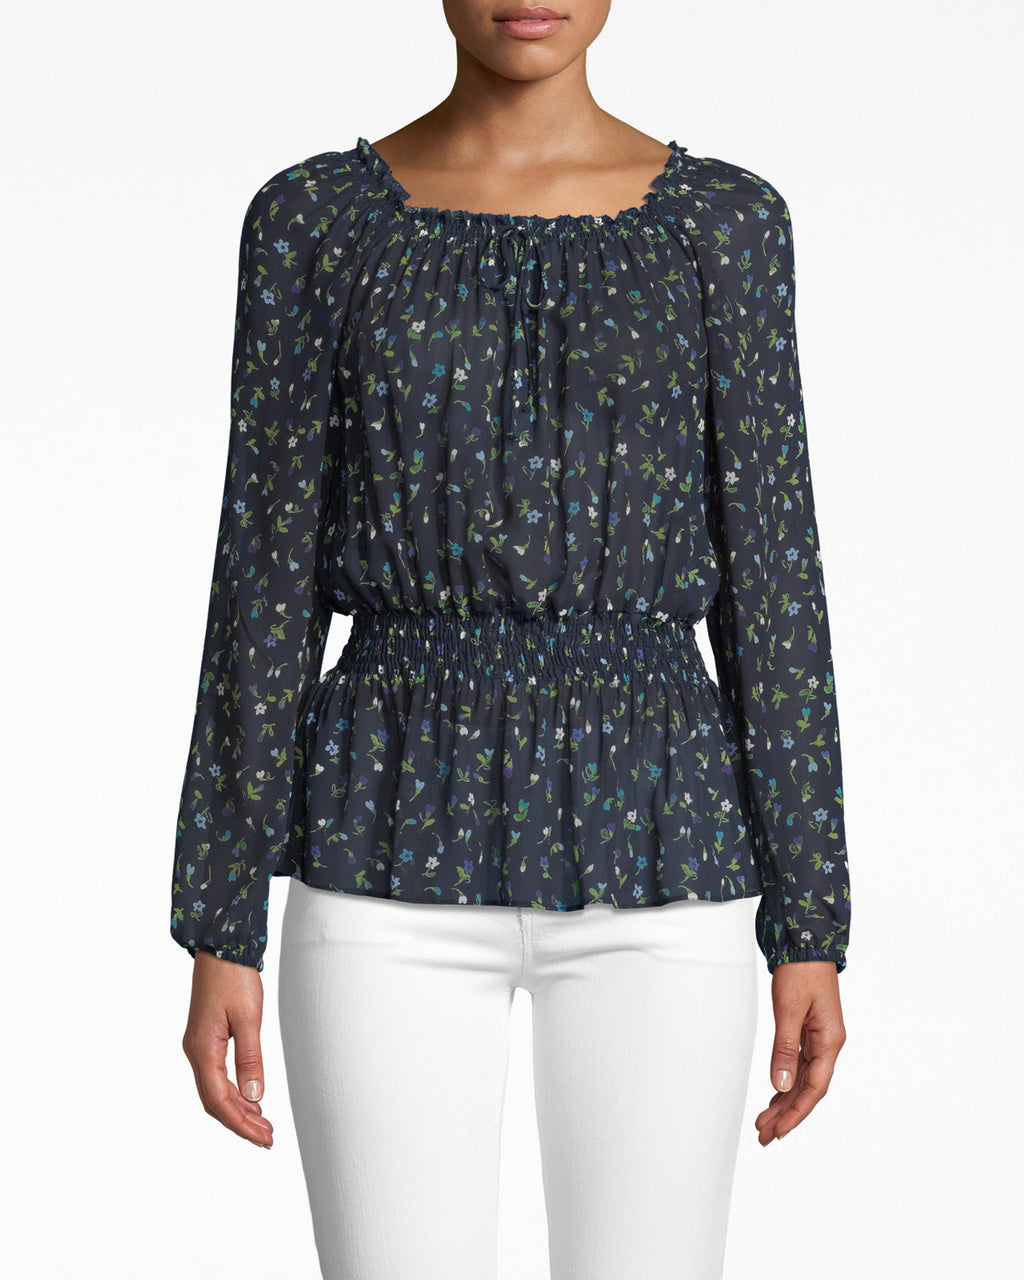 BG10338 - DITSY FLORAL LONG SLEEVE SMOCKED BLOUSE - tops - blouses - THIS GIRLY SQUARE NECKLINE BLOUSE PAIRS WELL WITH EVERYTHING FROM DENIM TO LEATHER SKIRTS. SMOCKING CINCHES THE WAIST FOR A FLATTERING TOUCH.